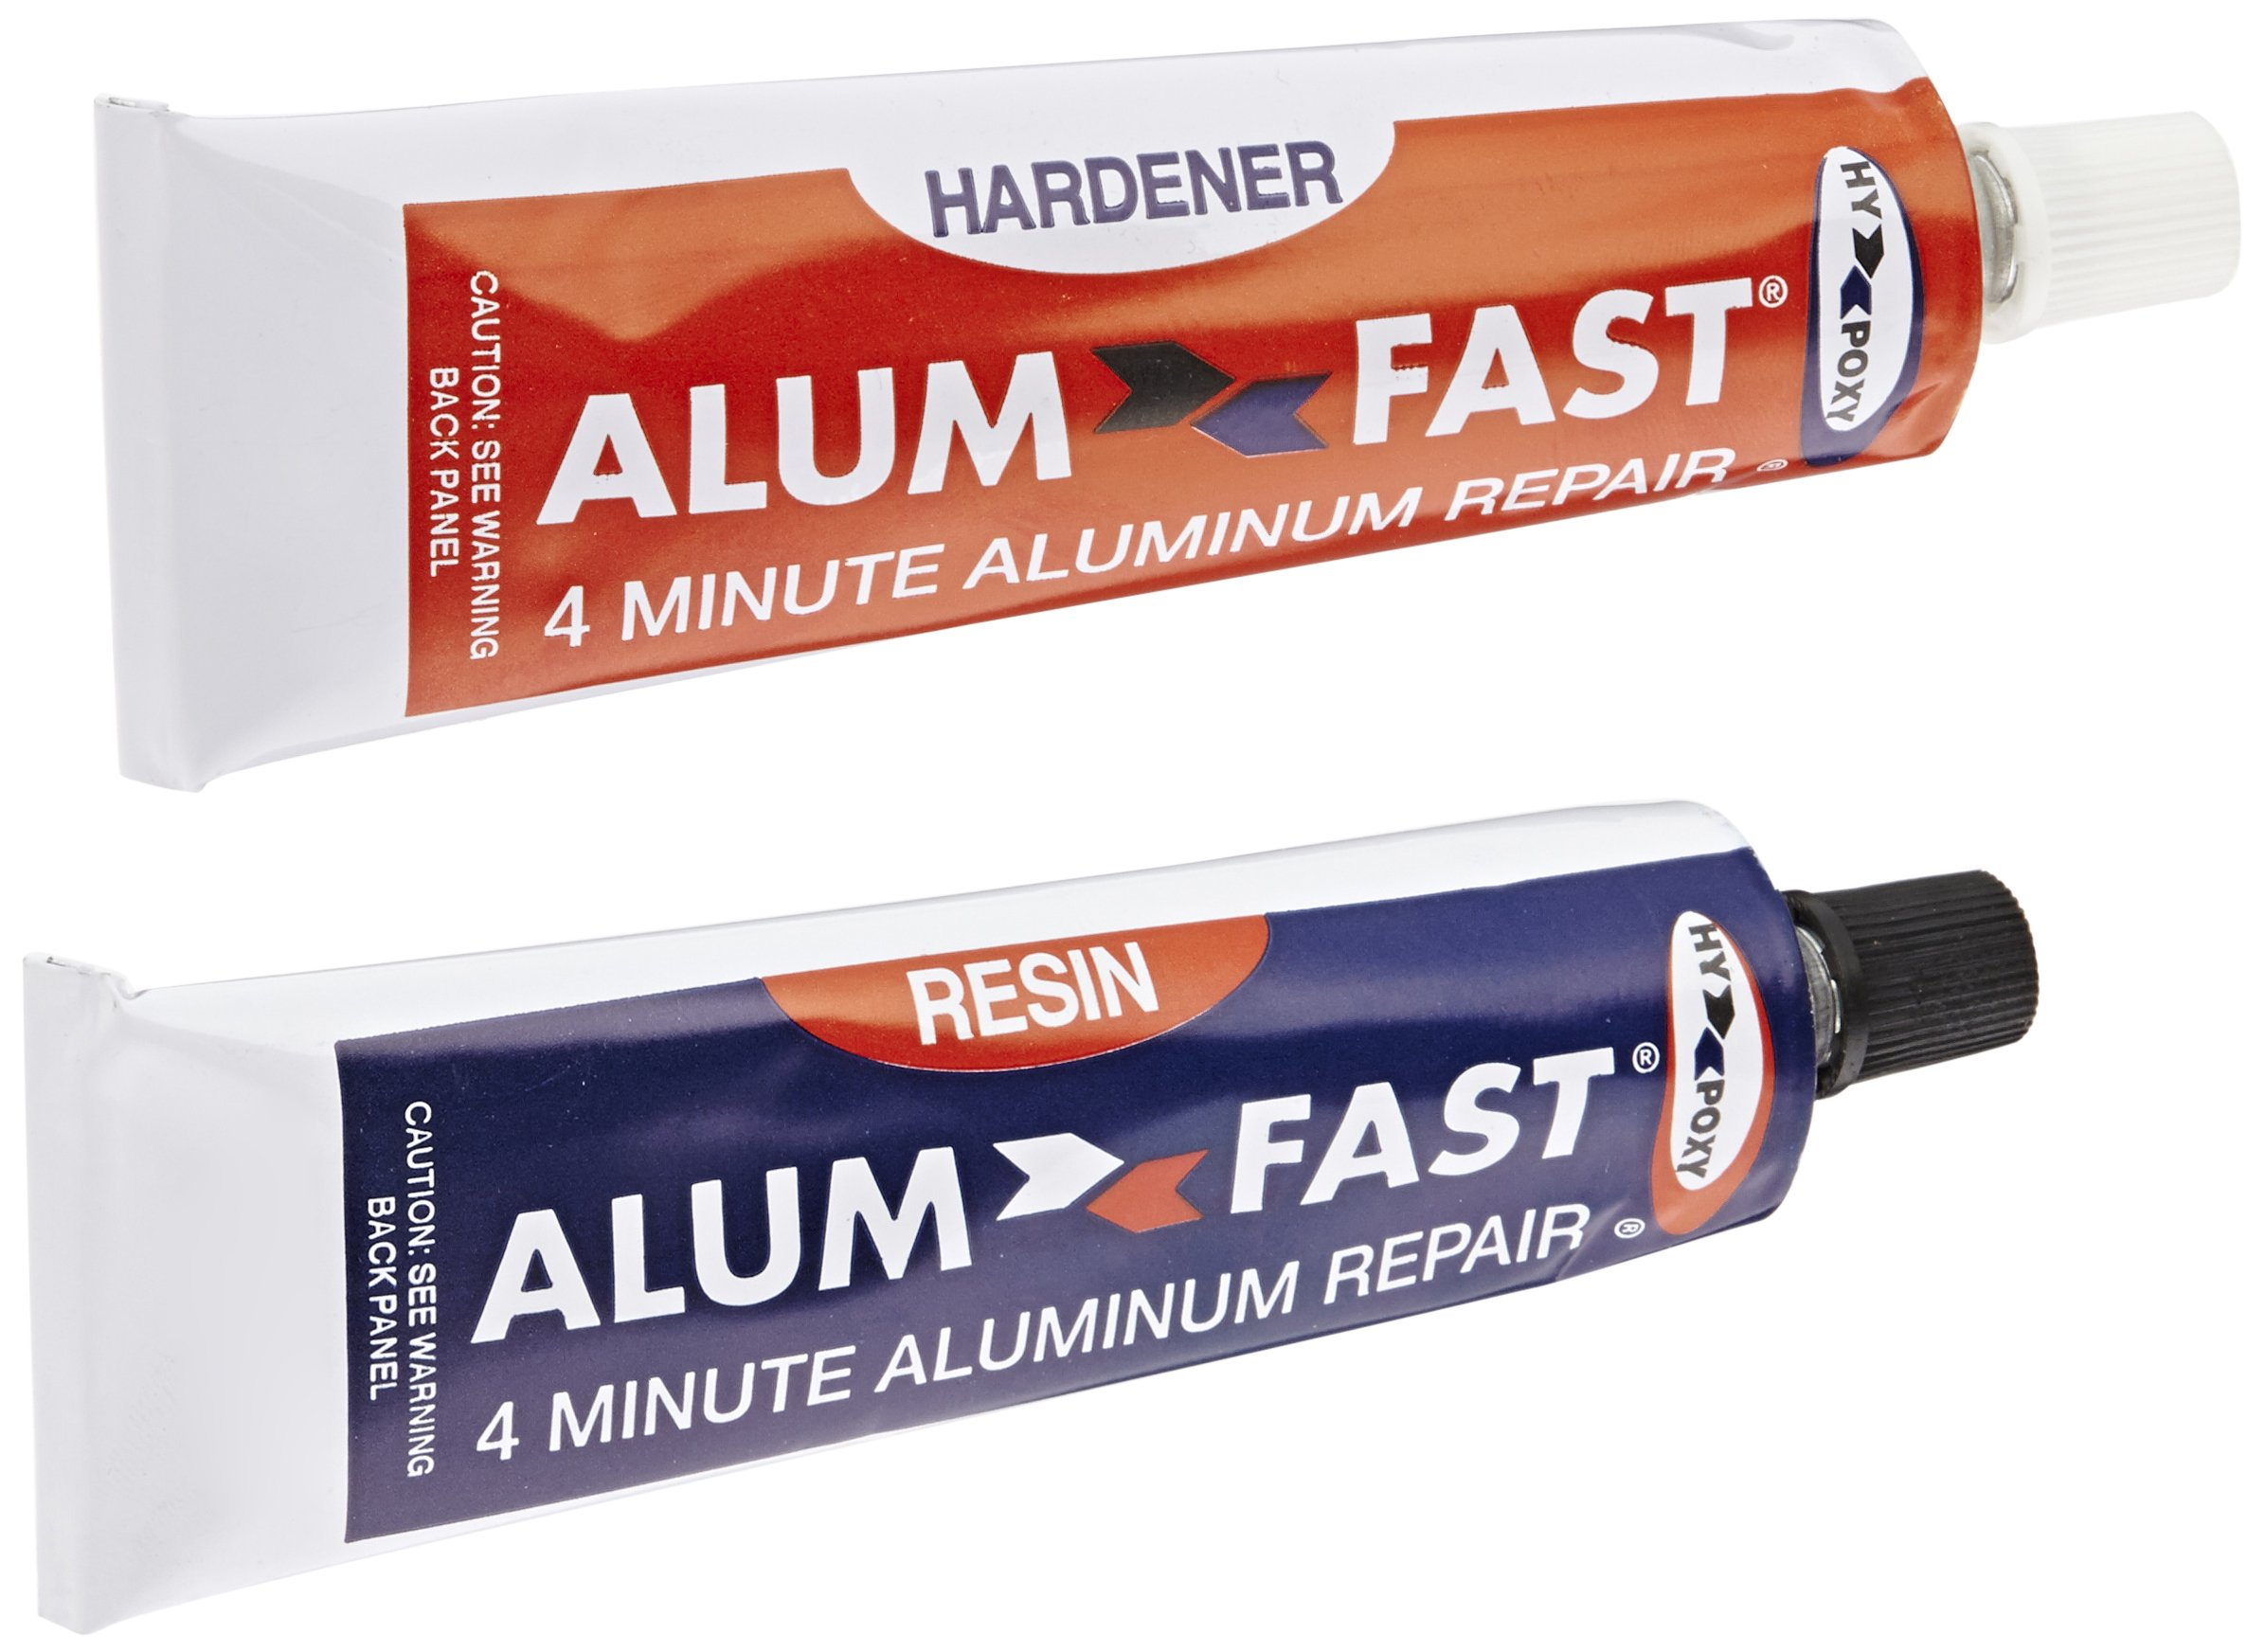 Hy-Poxy H-455 Alumfast 6.5 oz Rapid Cure Aluminum Putty Repair Kit by HY-POXY